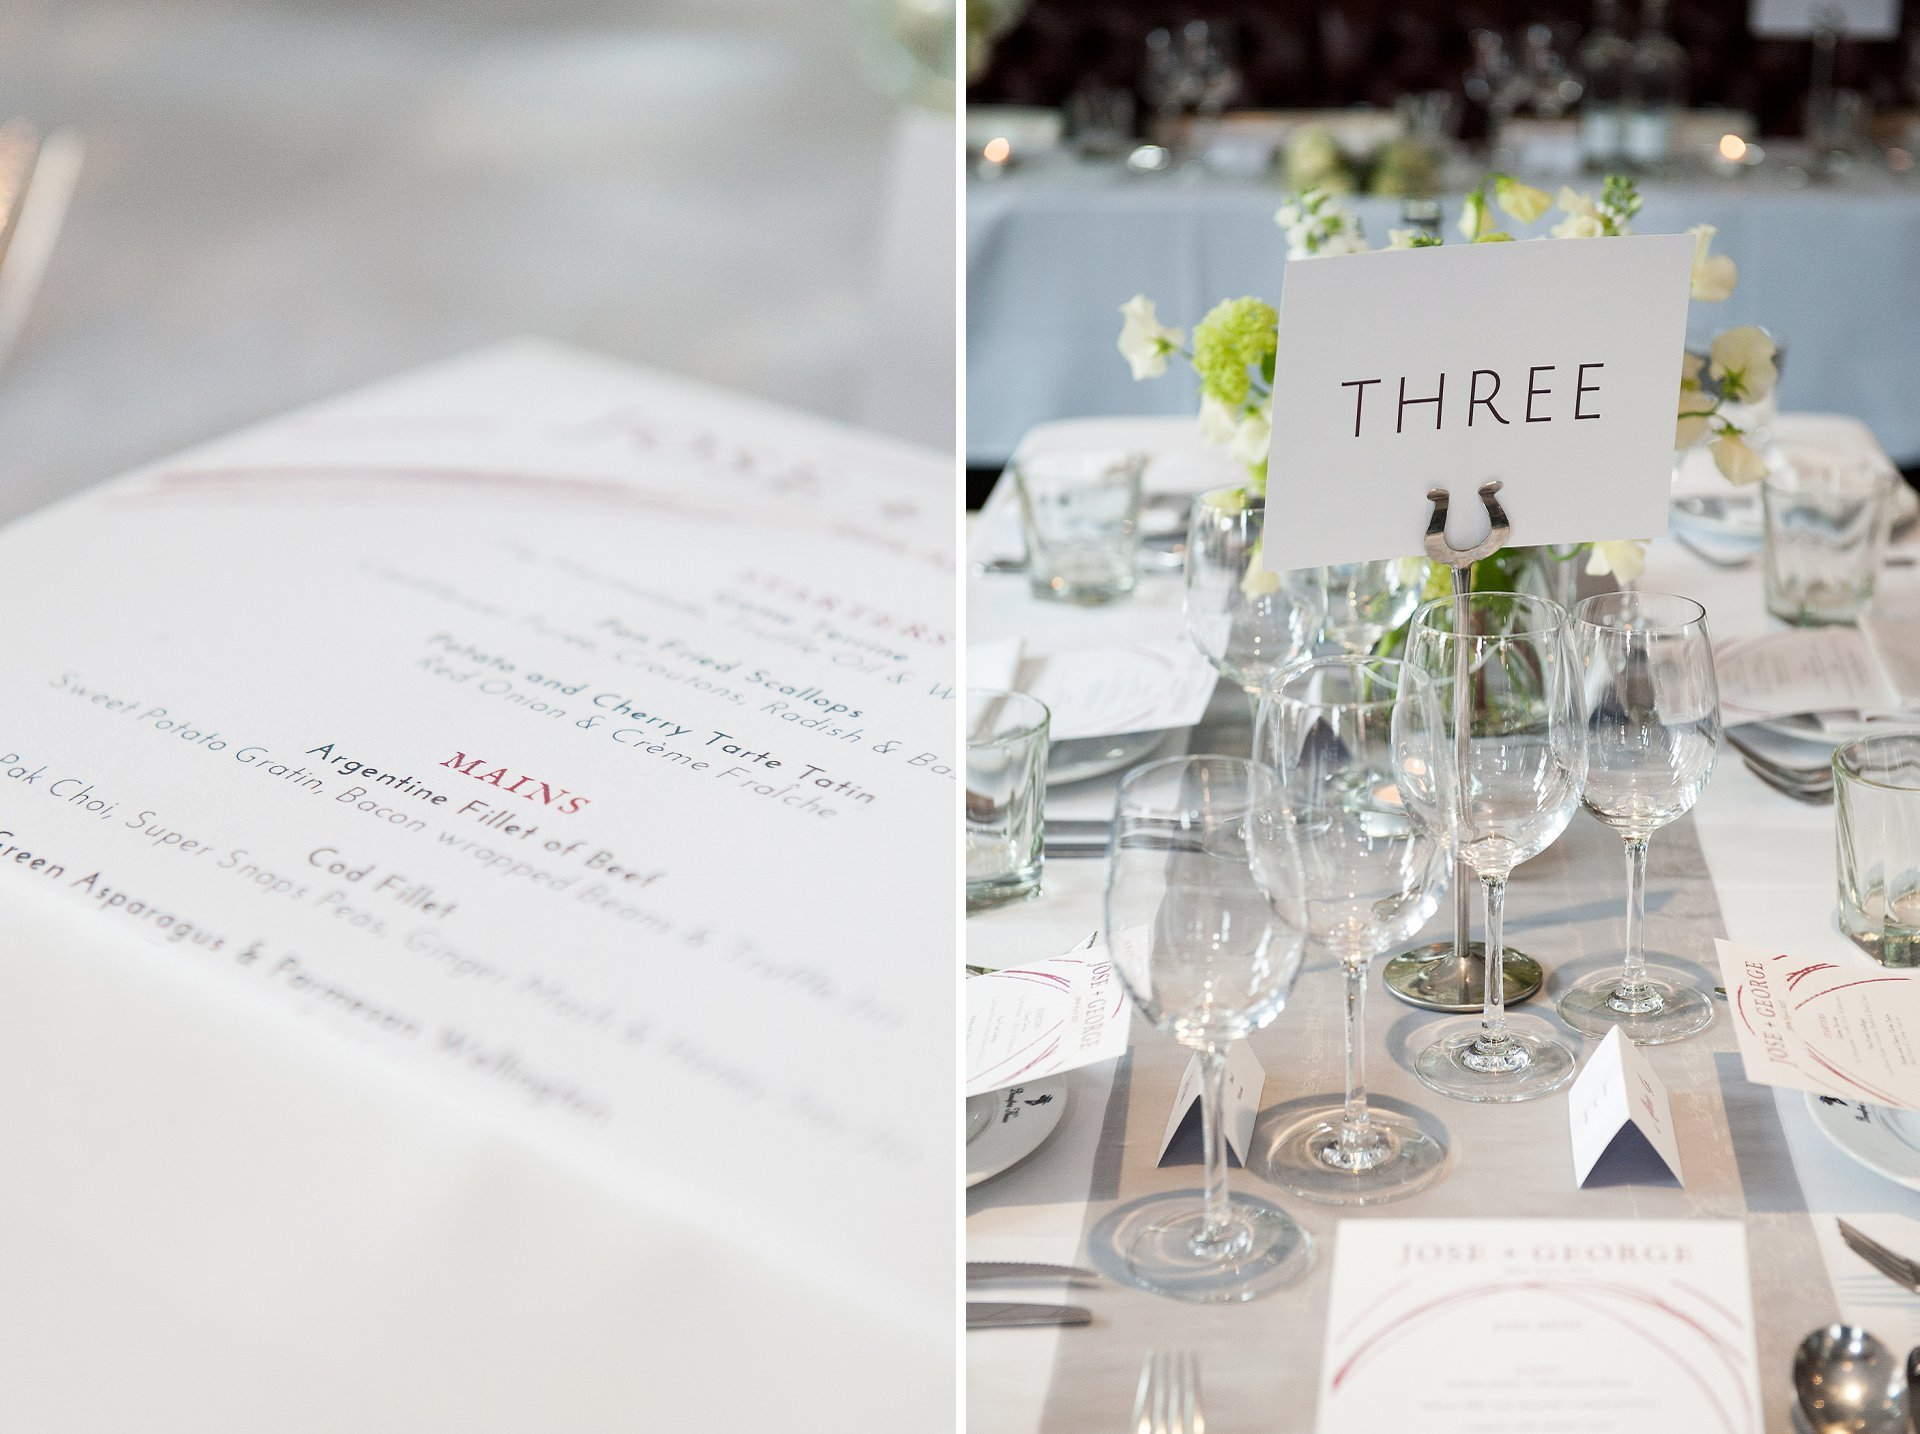 Table layout and menu for a Beaufort House wedding reception in a private room